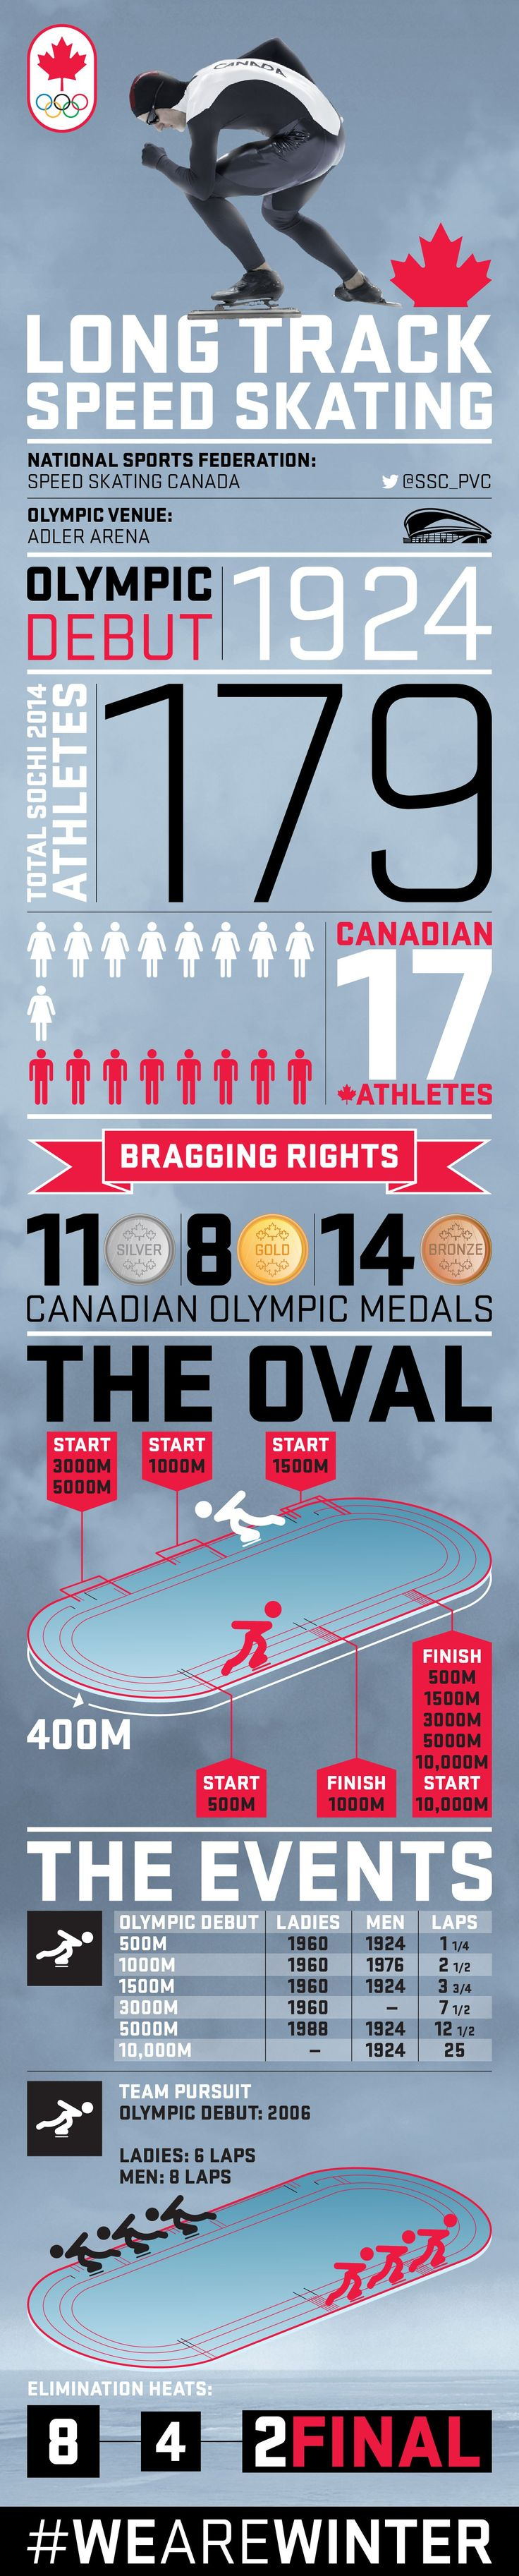 Your guide to Olympic Long Track Speed Skating [INFOGRAPHIC]   Official Canadian Olympic Team Website   Team Canada   2014 Winter Olympics